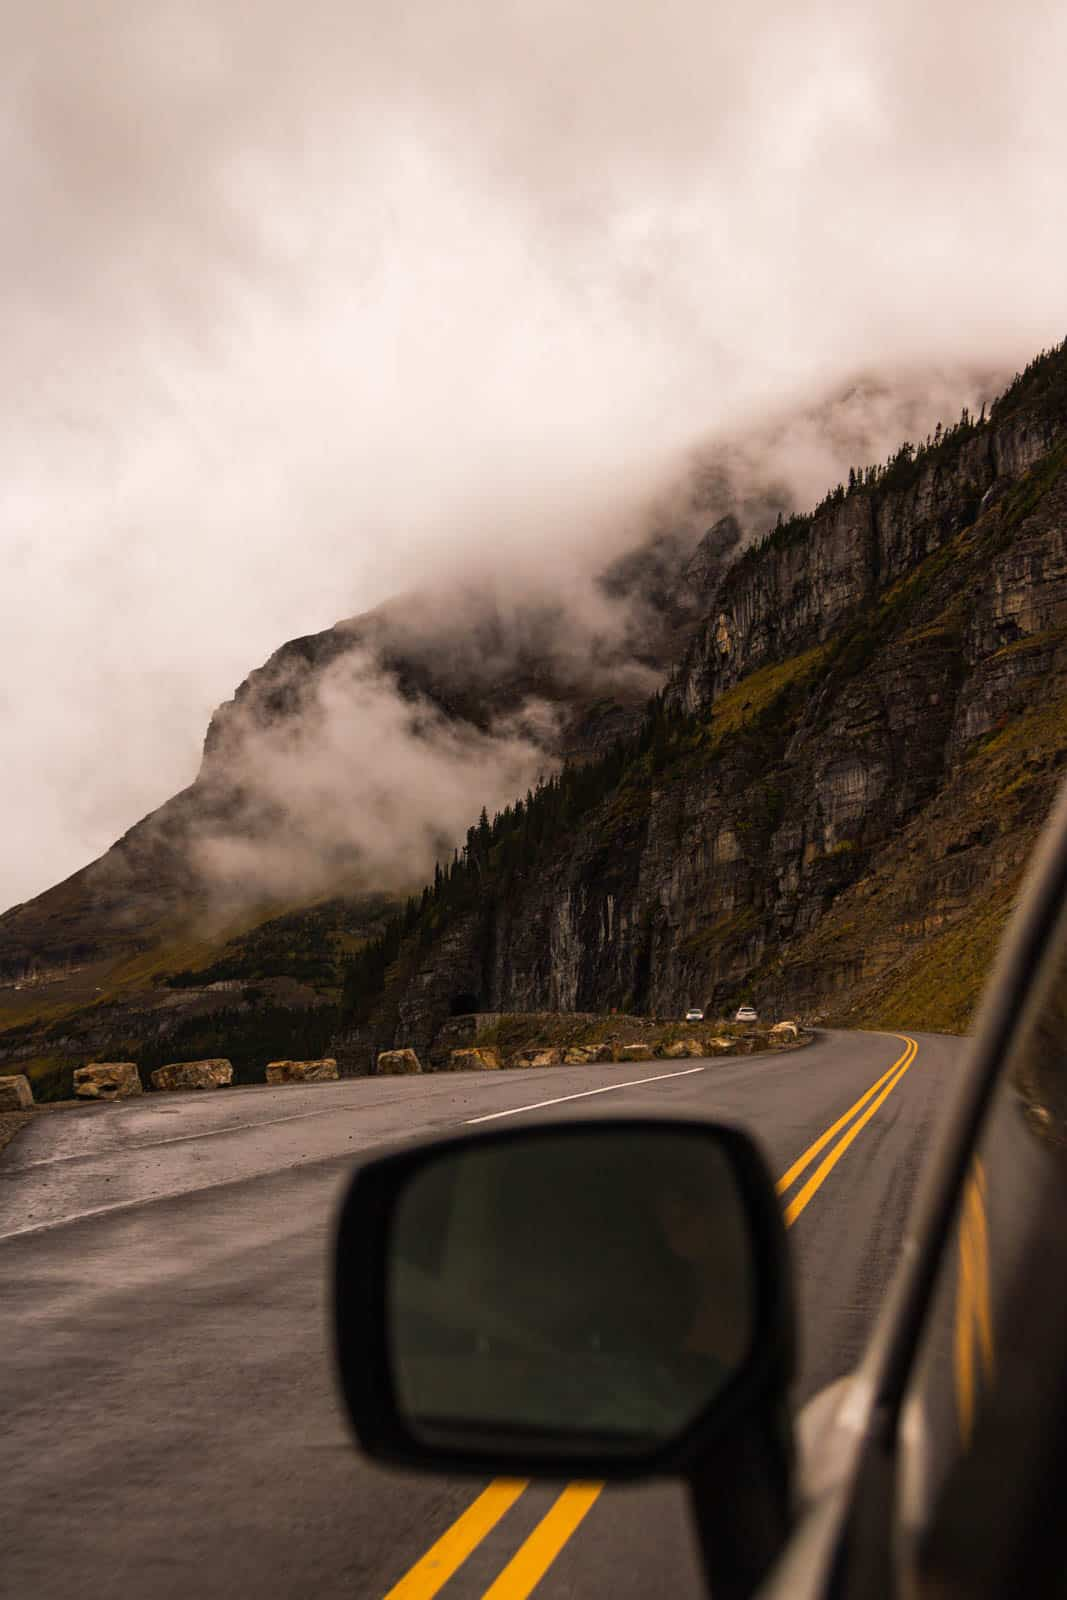 Road tripping the Going-to-the-Sun Road is one of the best things to do in Glacier National Park.